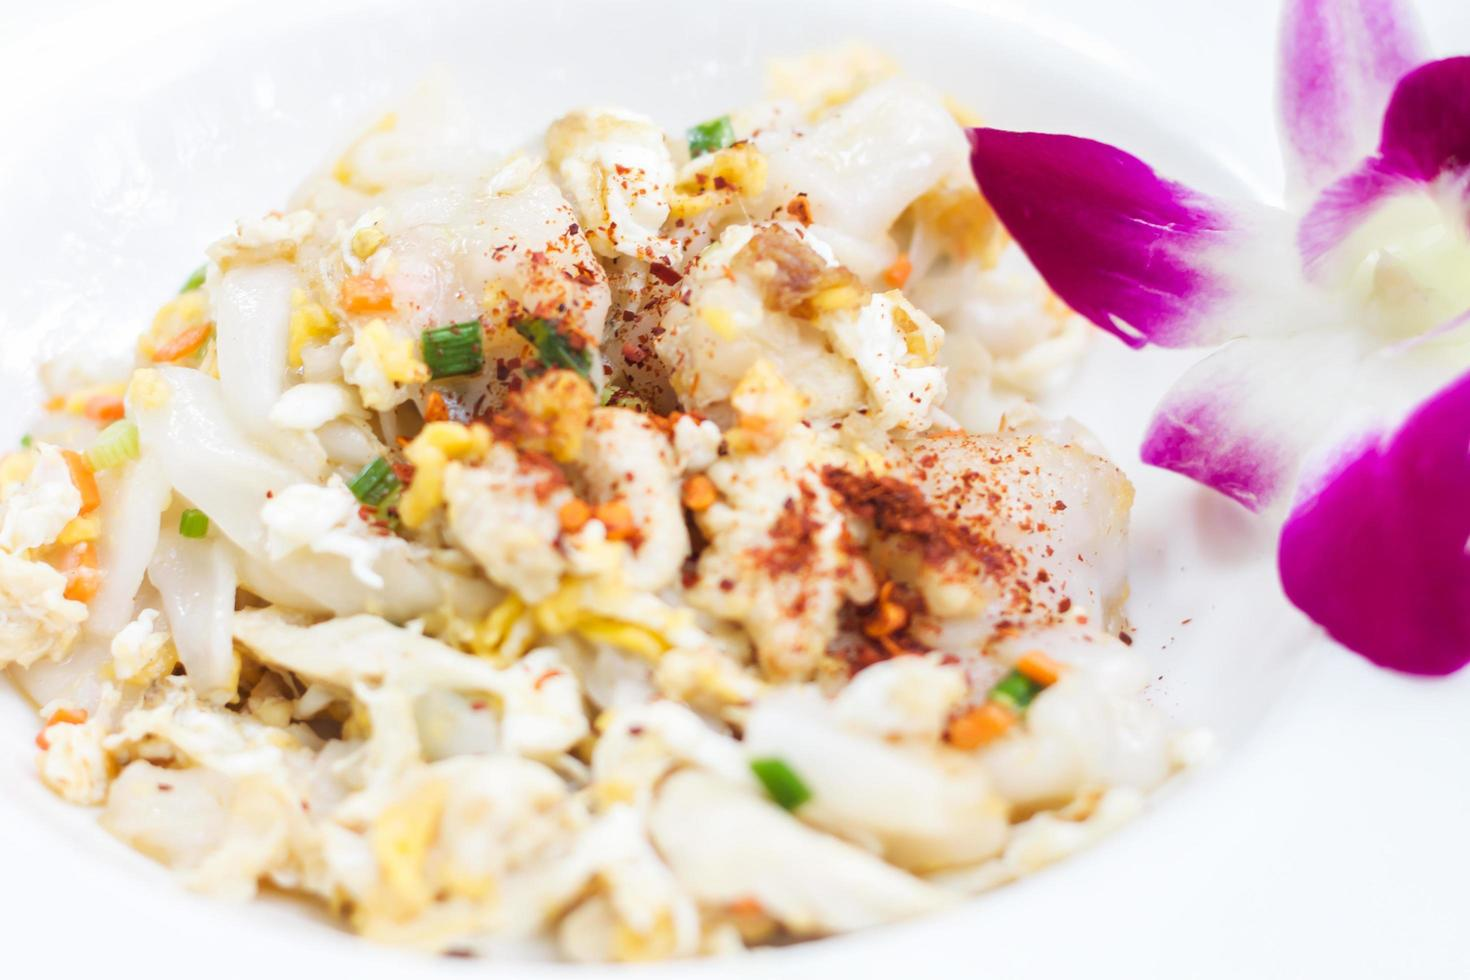 Close-up of fried noodles with pork and a flower photo